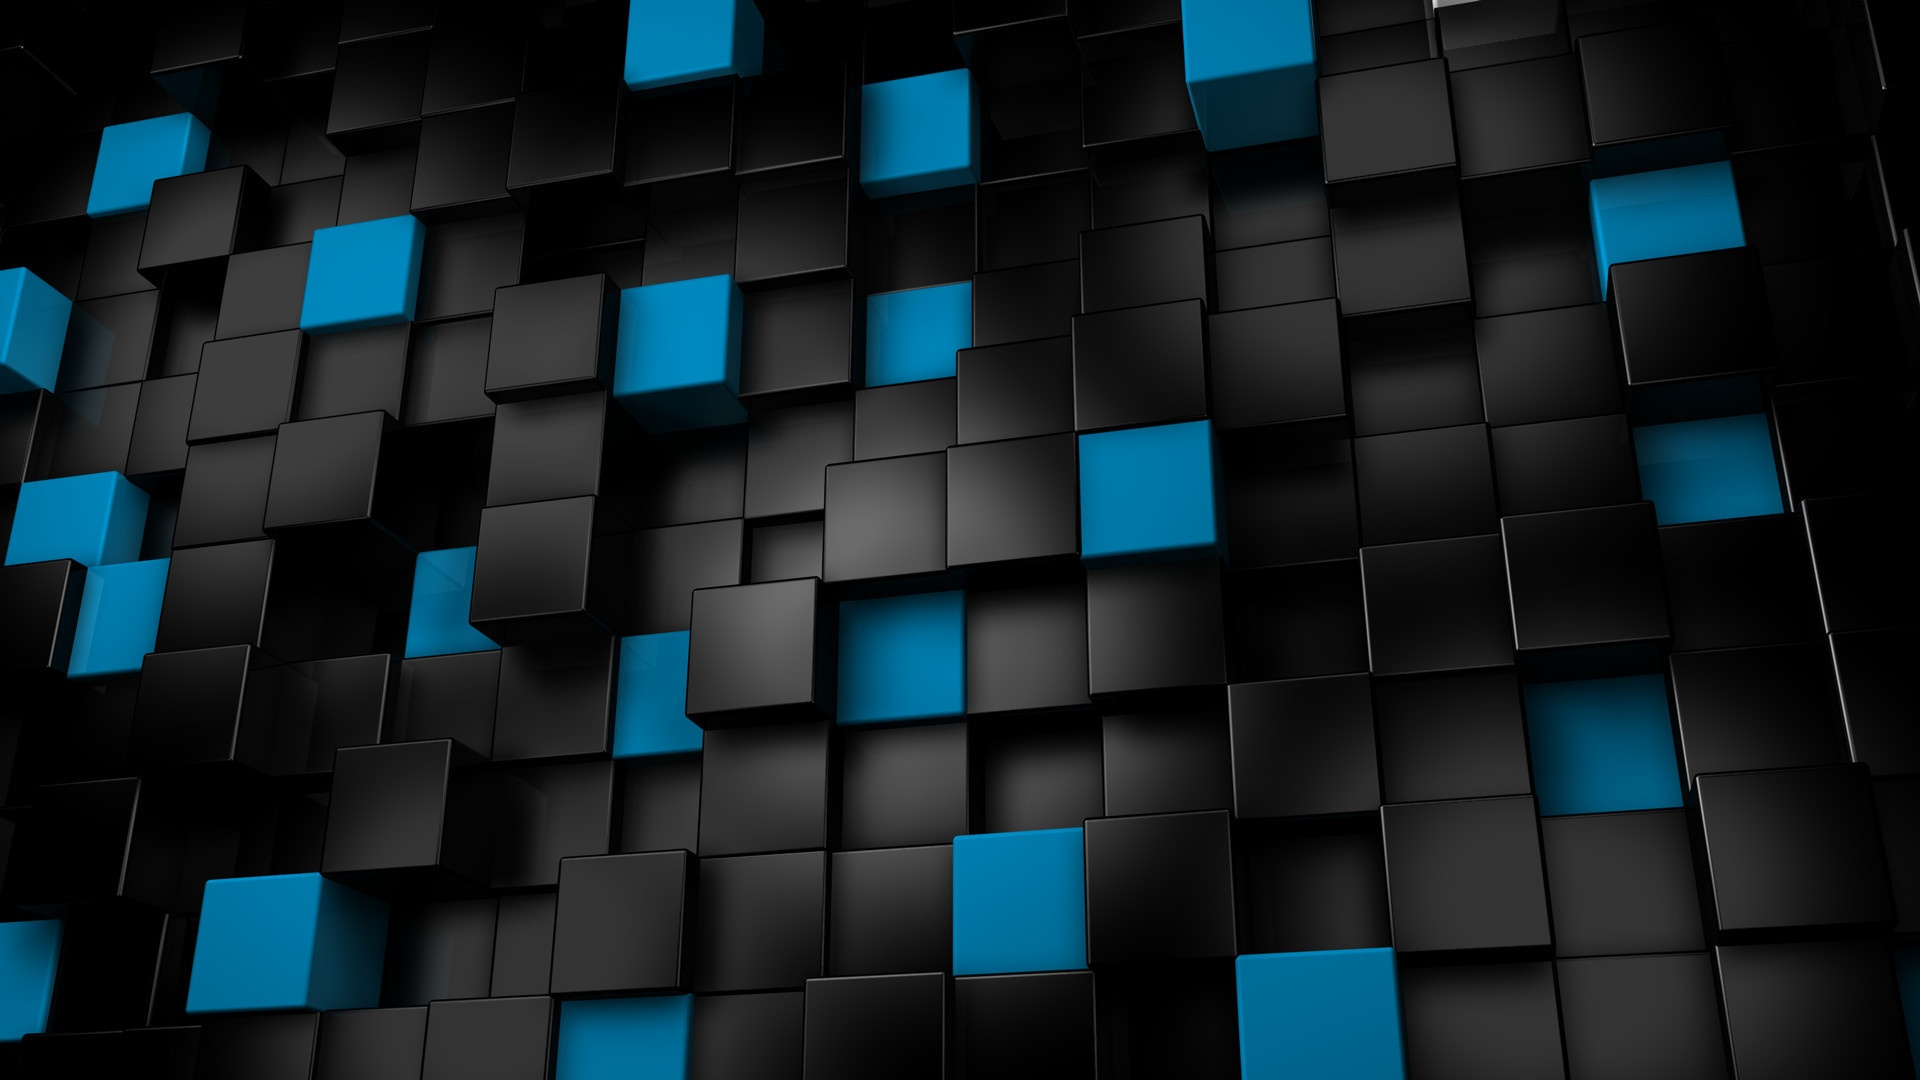 Blue and Black Cubic Backgrounds 563.03 Kb